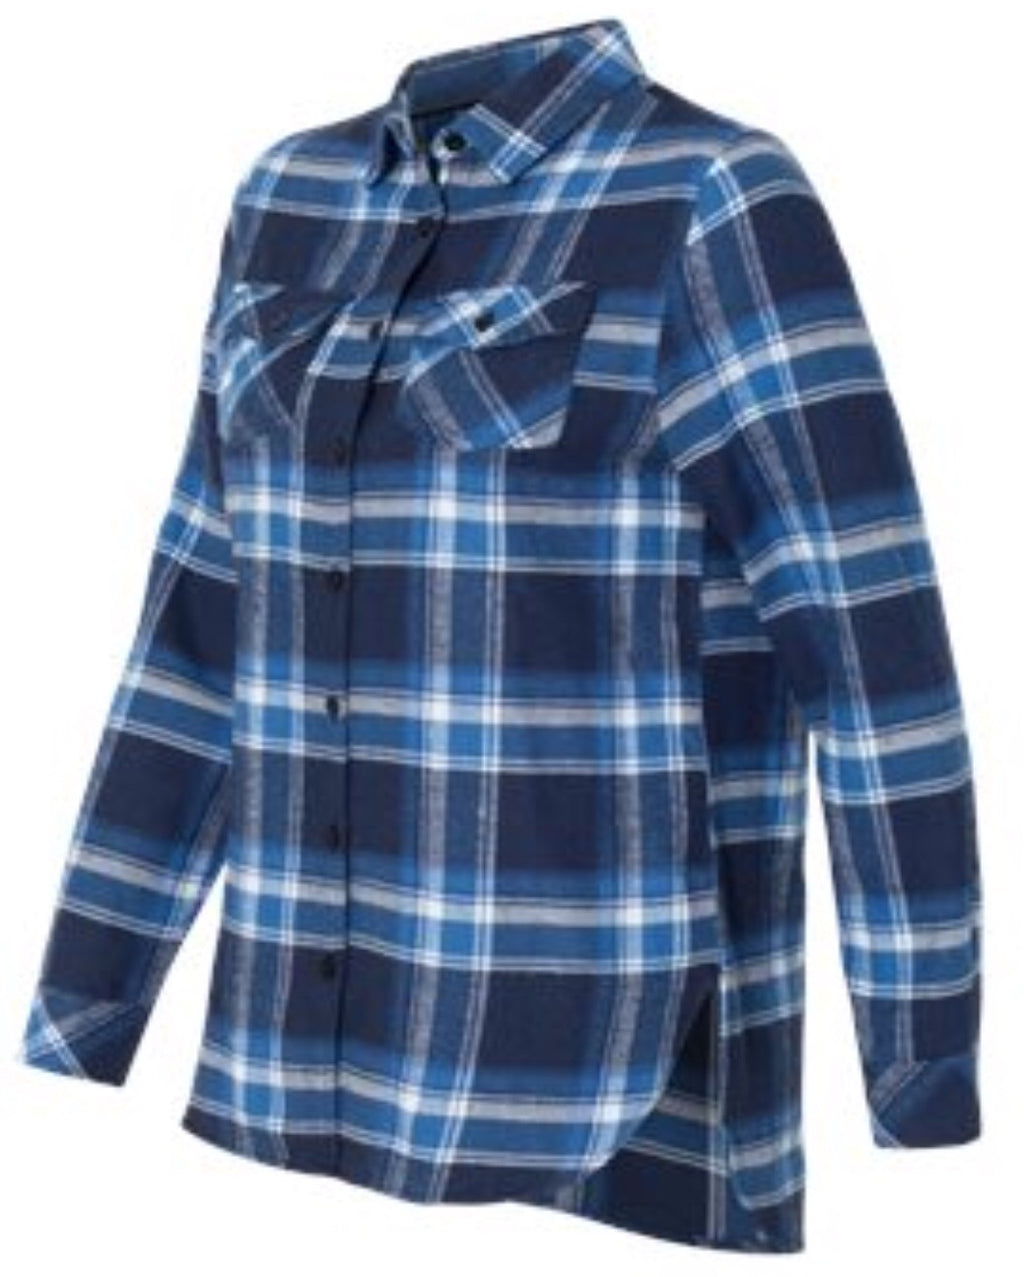 Ladies Blue/White Flannel